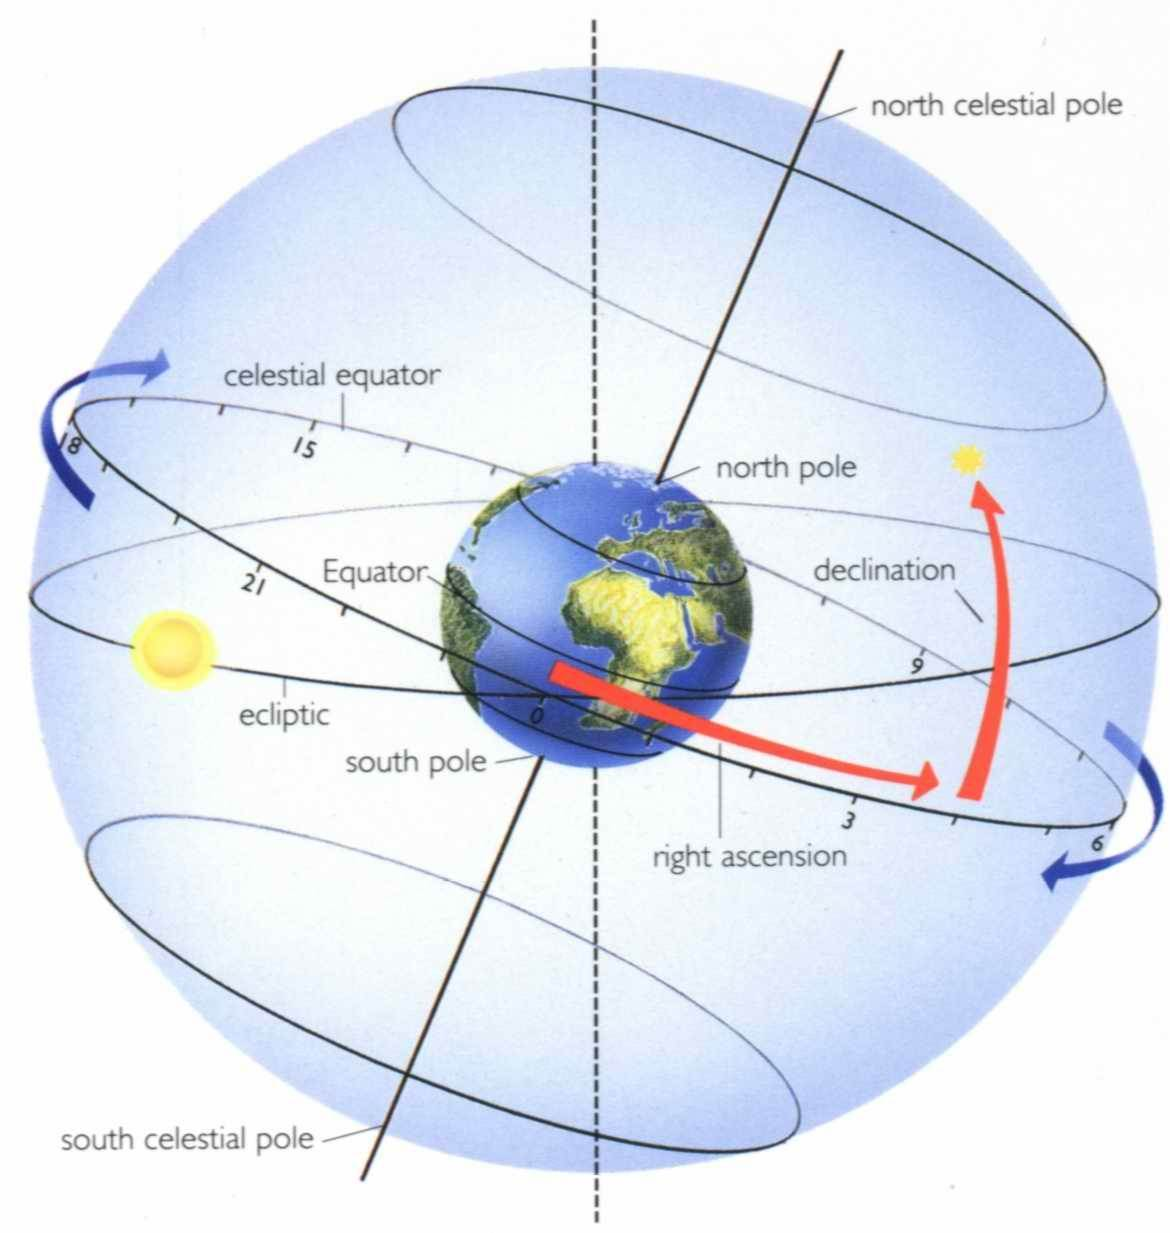 hight resolution of  in simple terms just think it as equivalent to longitude right ascension and latitude as declination on celestial sphere that will help you